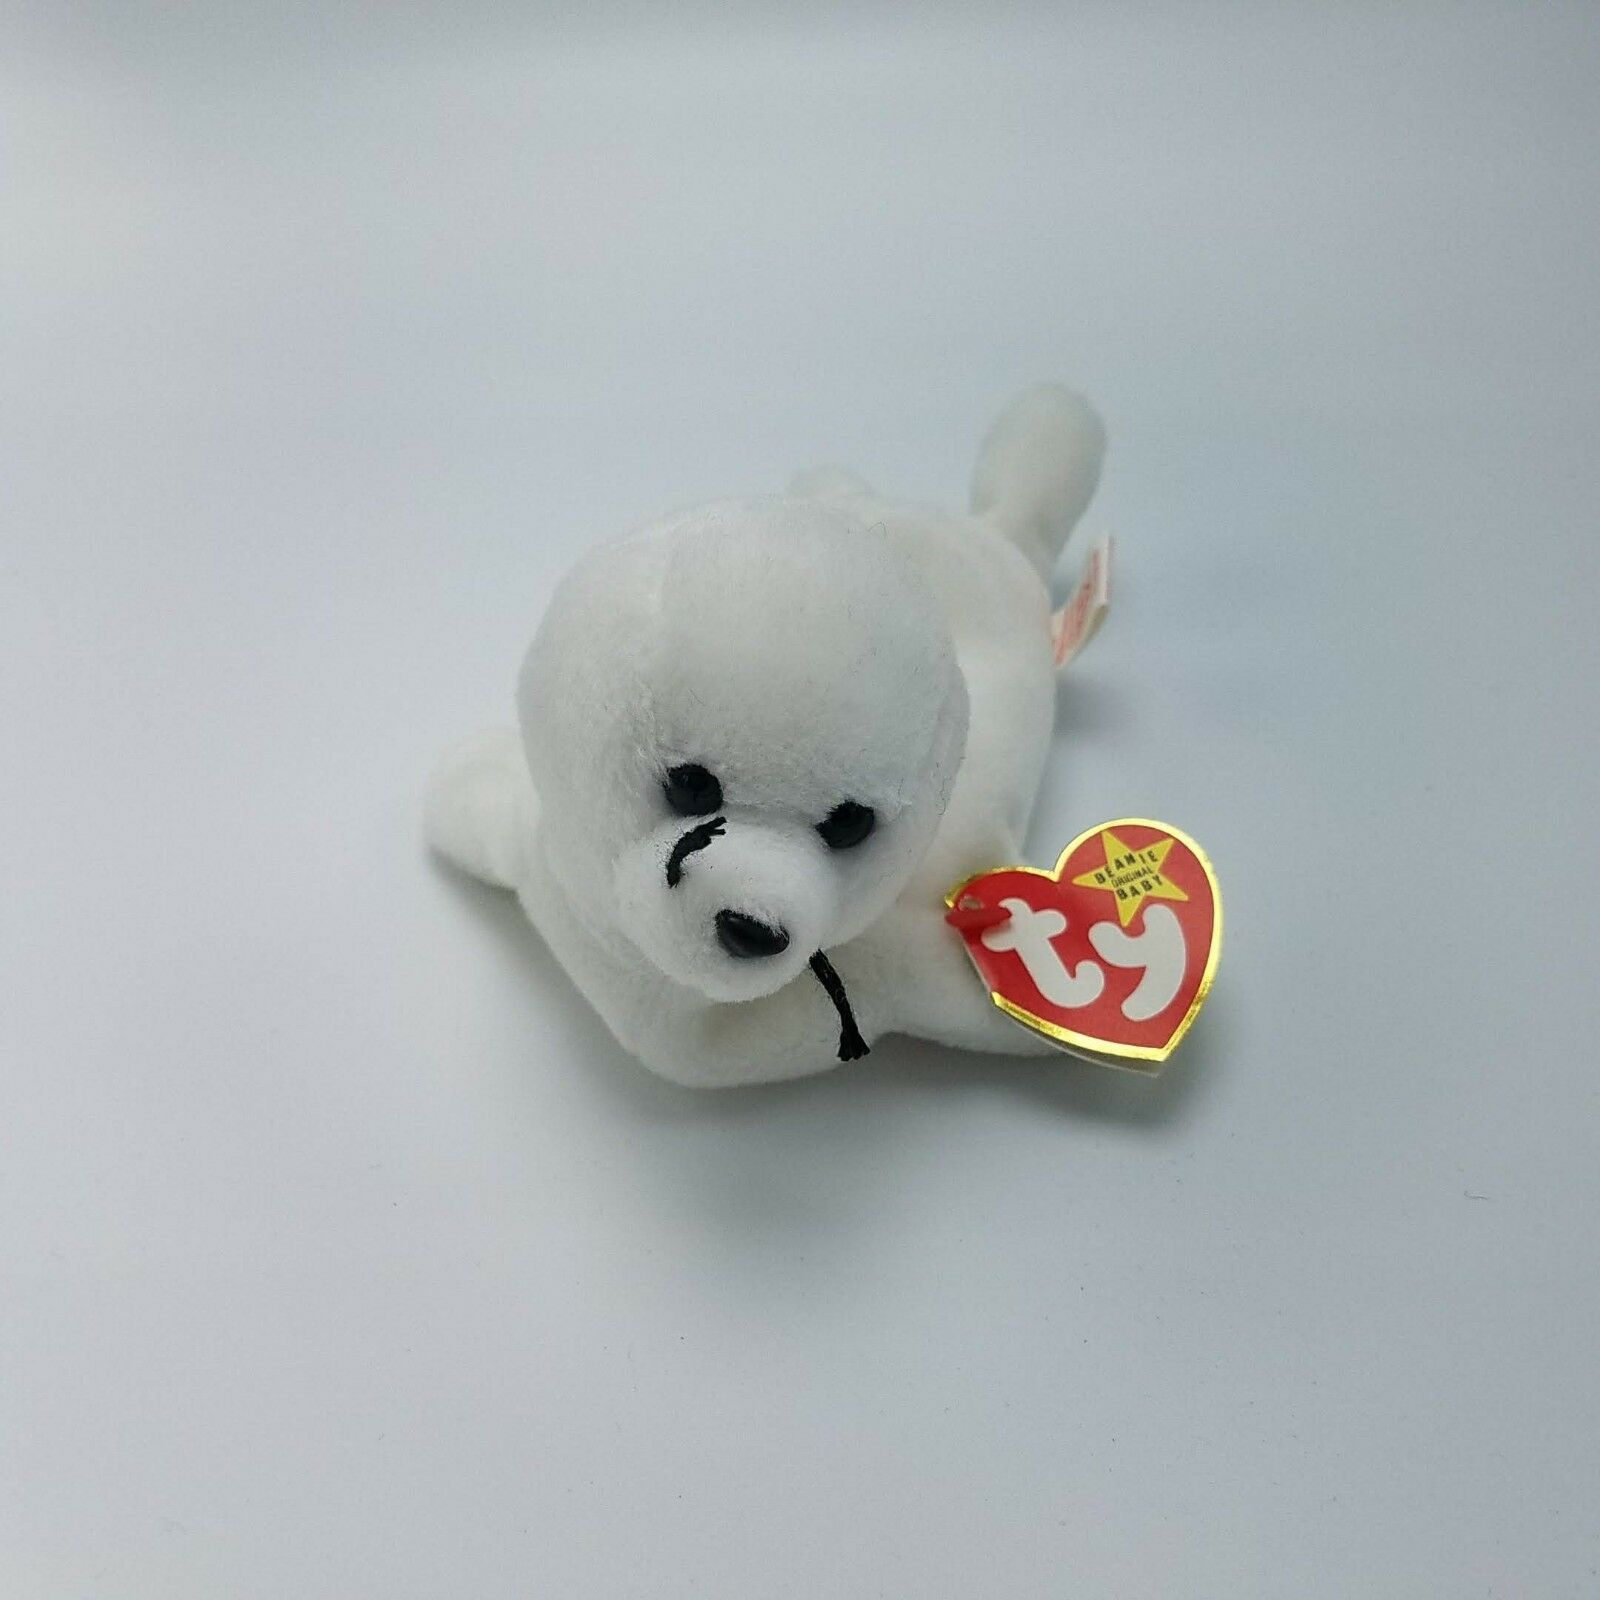 TY TY TY Beanie Baby SEAMORE The Seal 4th Gen Hang Tag - 1st Gen Tush Tag Errors a49f48